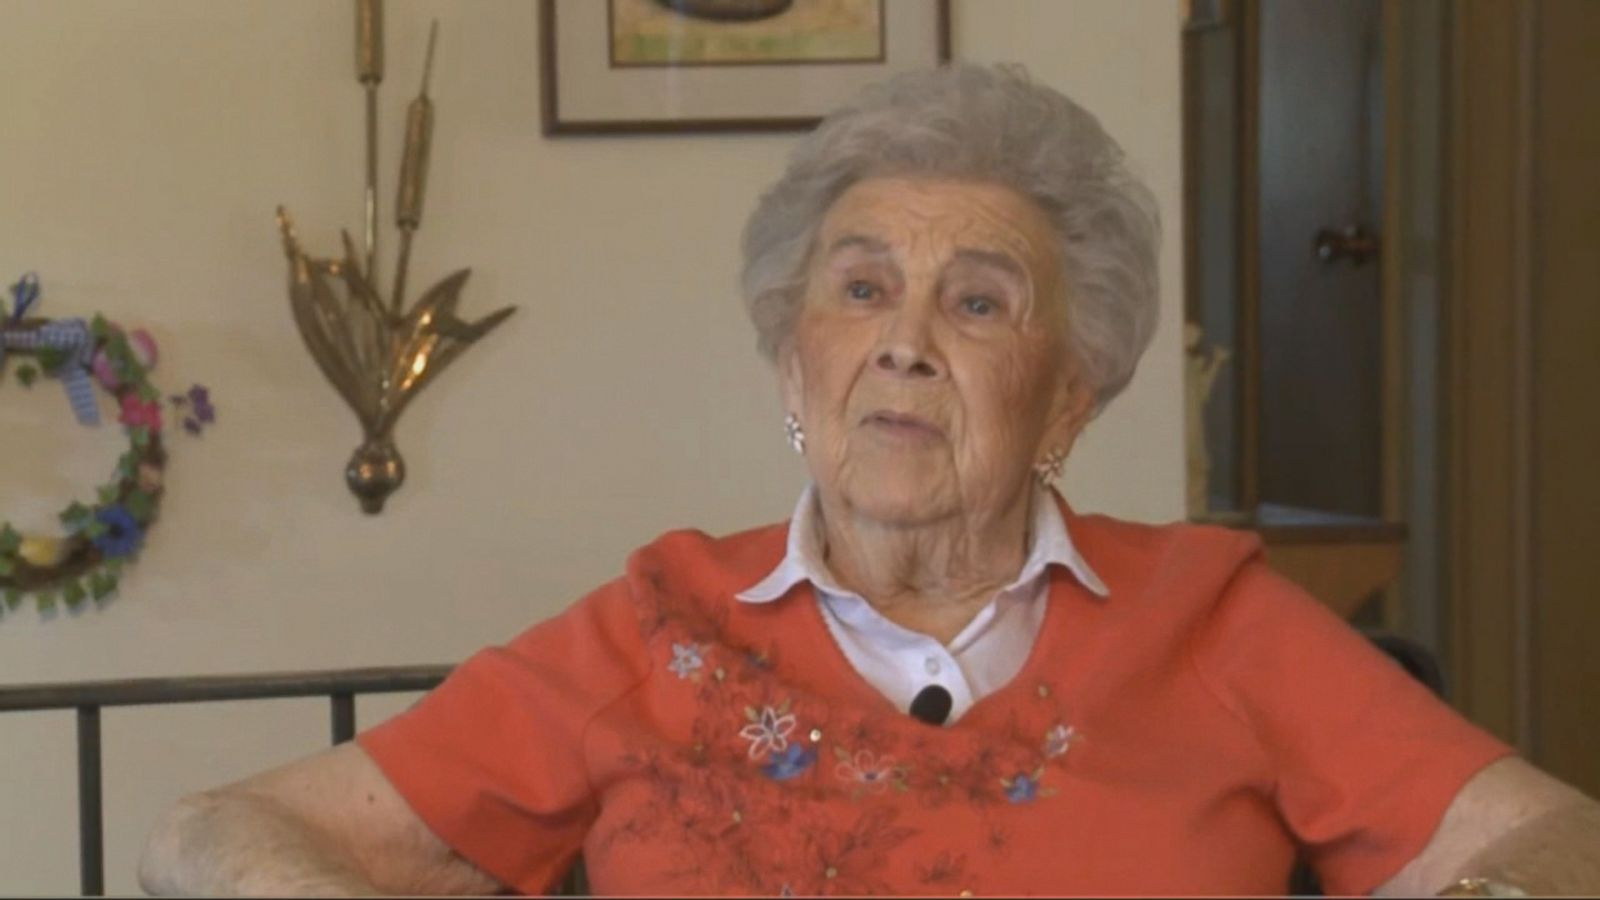 VIDEO: Avon Lady Still Calling at Age 94 Opal Greene has been selling the company's products in Nebraska since 1962.